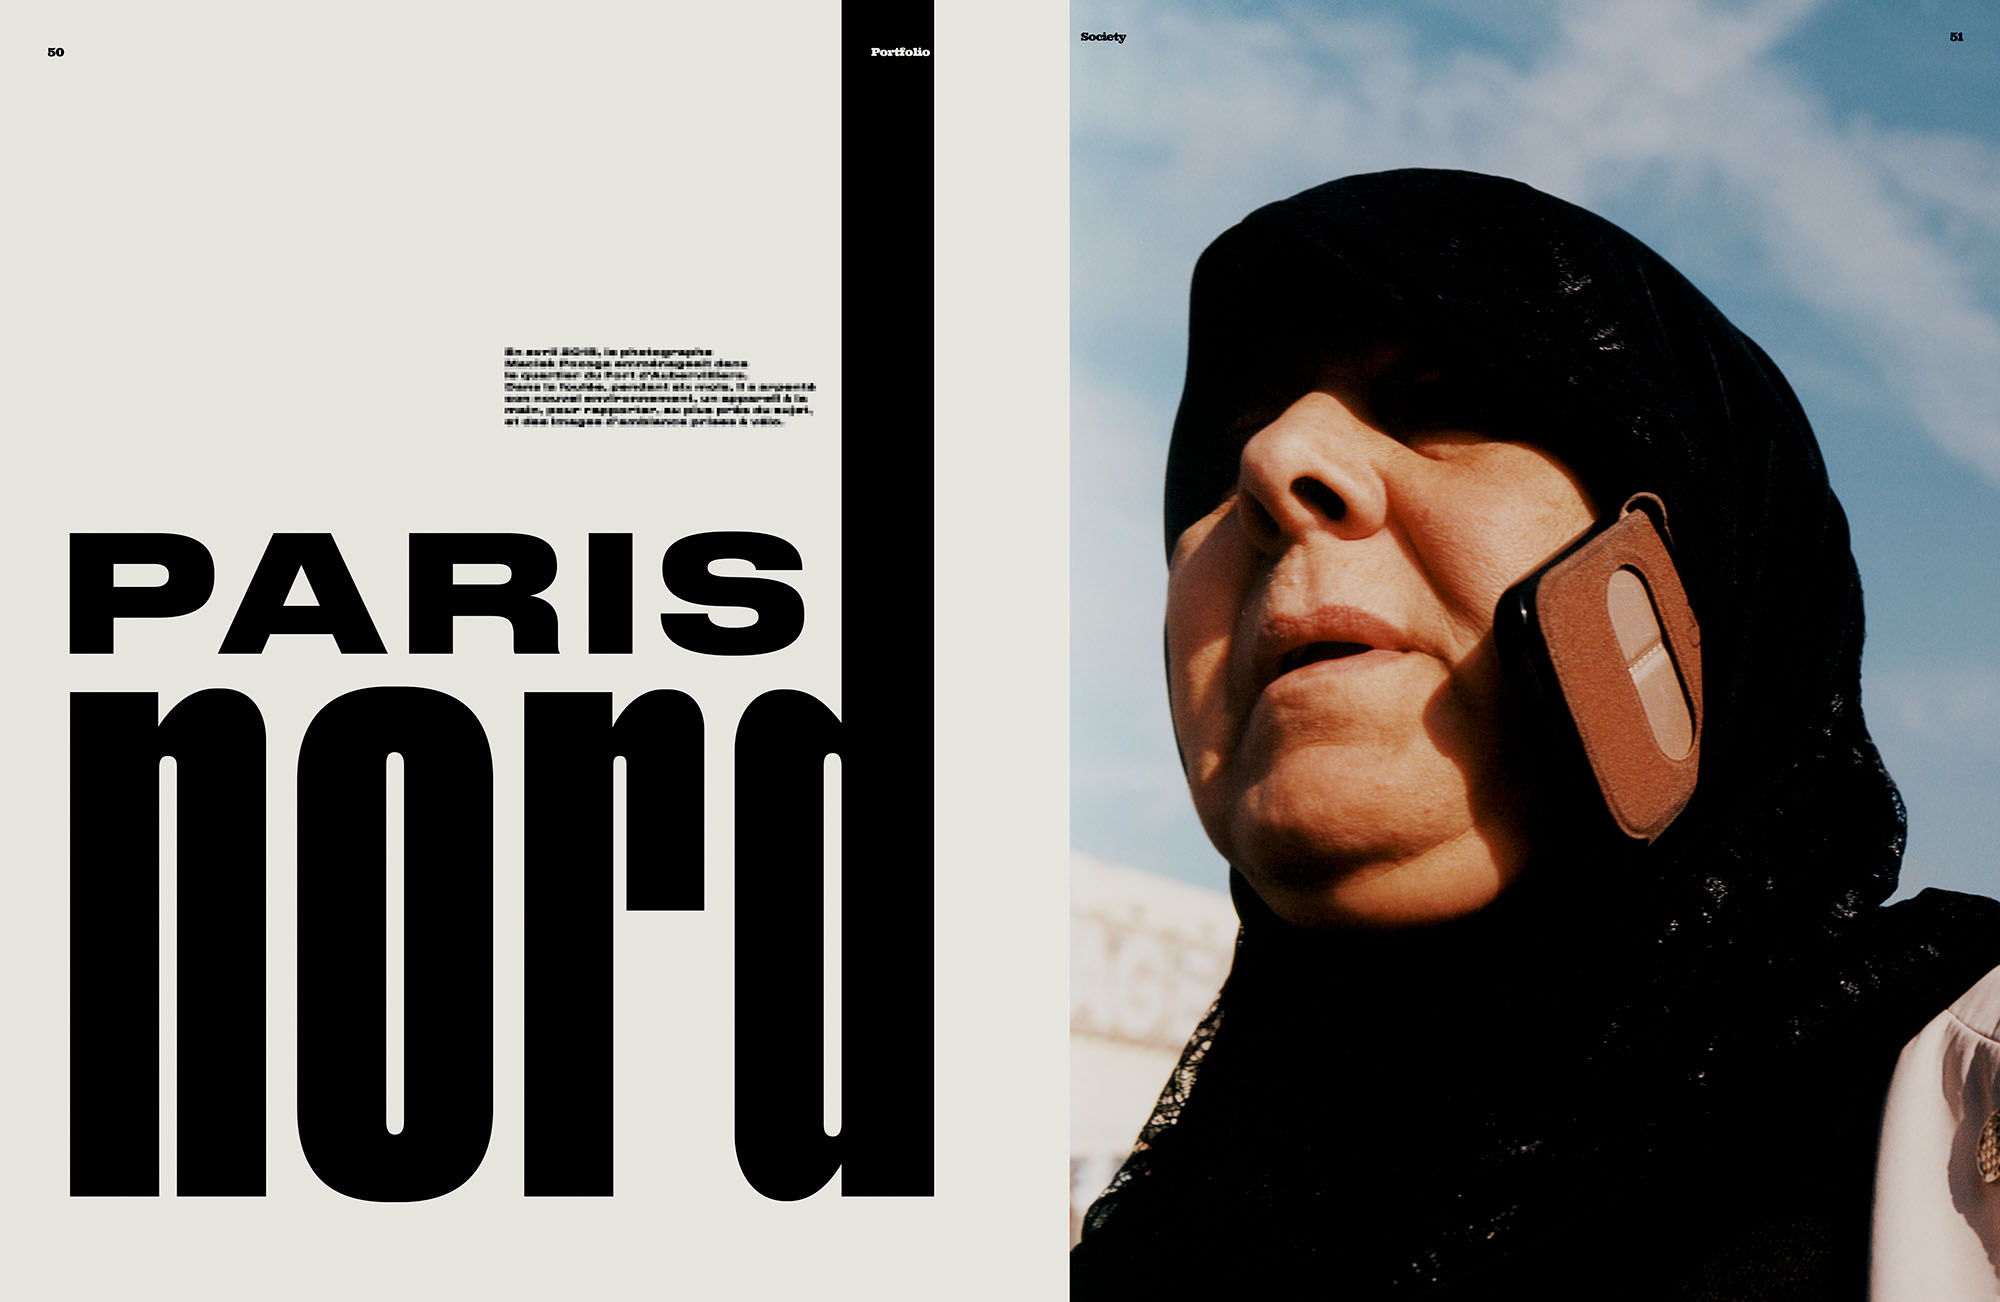 A ten-page portfolio published in *Society magazine*. All images are from my recent project *Paris Nord*. Full project visible in the *Studies* section of this website. - © Maciek Pożoga